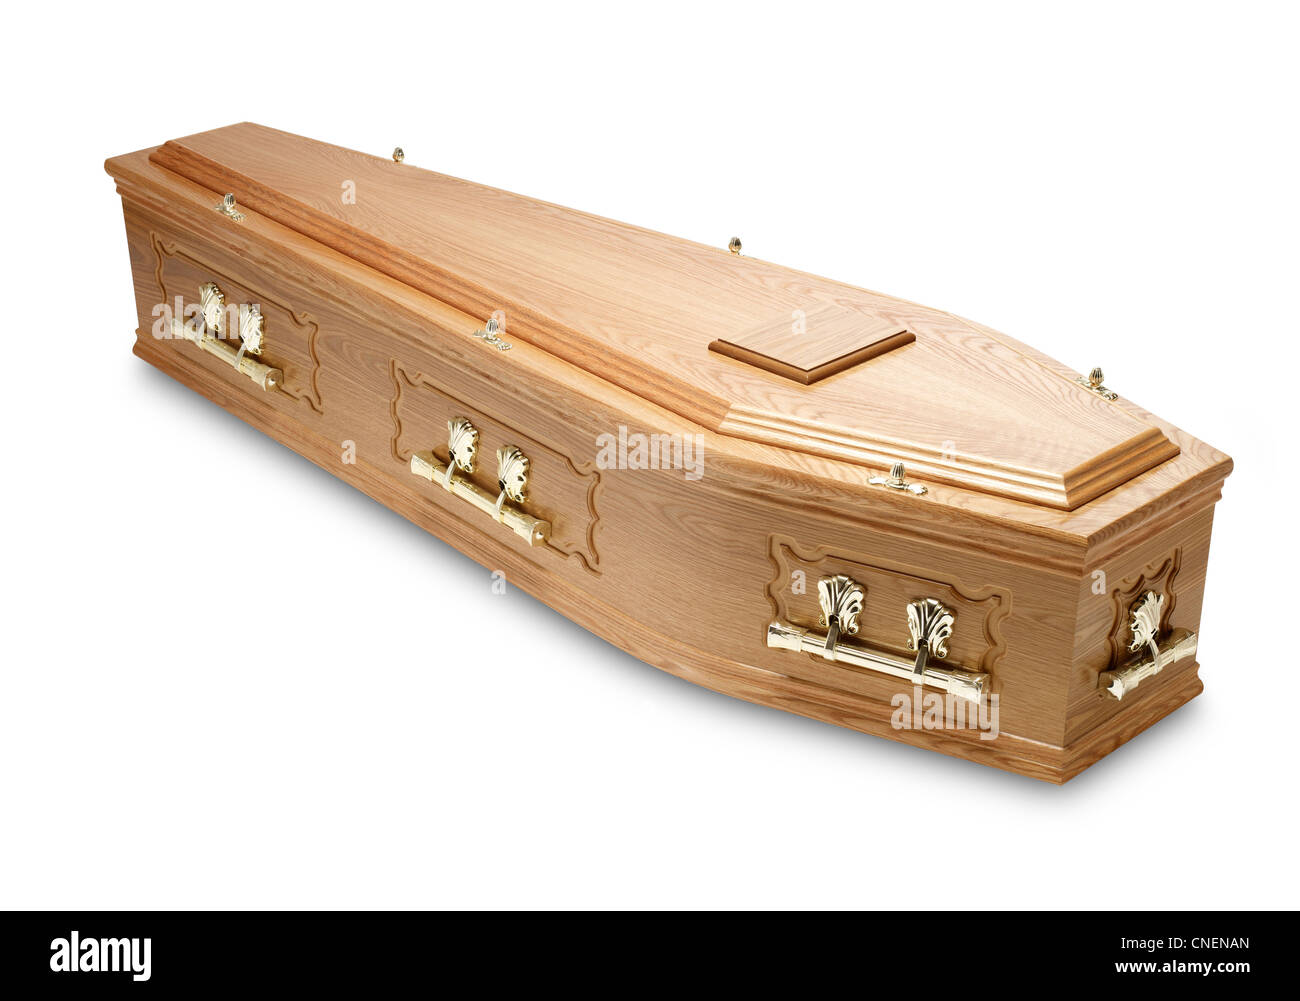 an ornate mahogany coffin casket with brass handles and name plaque - Stock Image